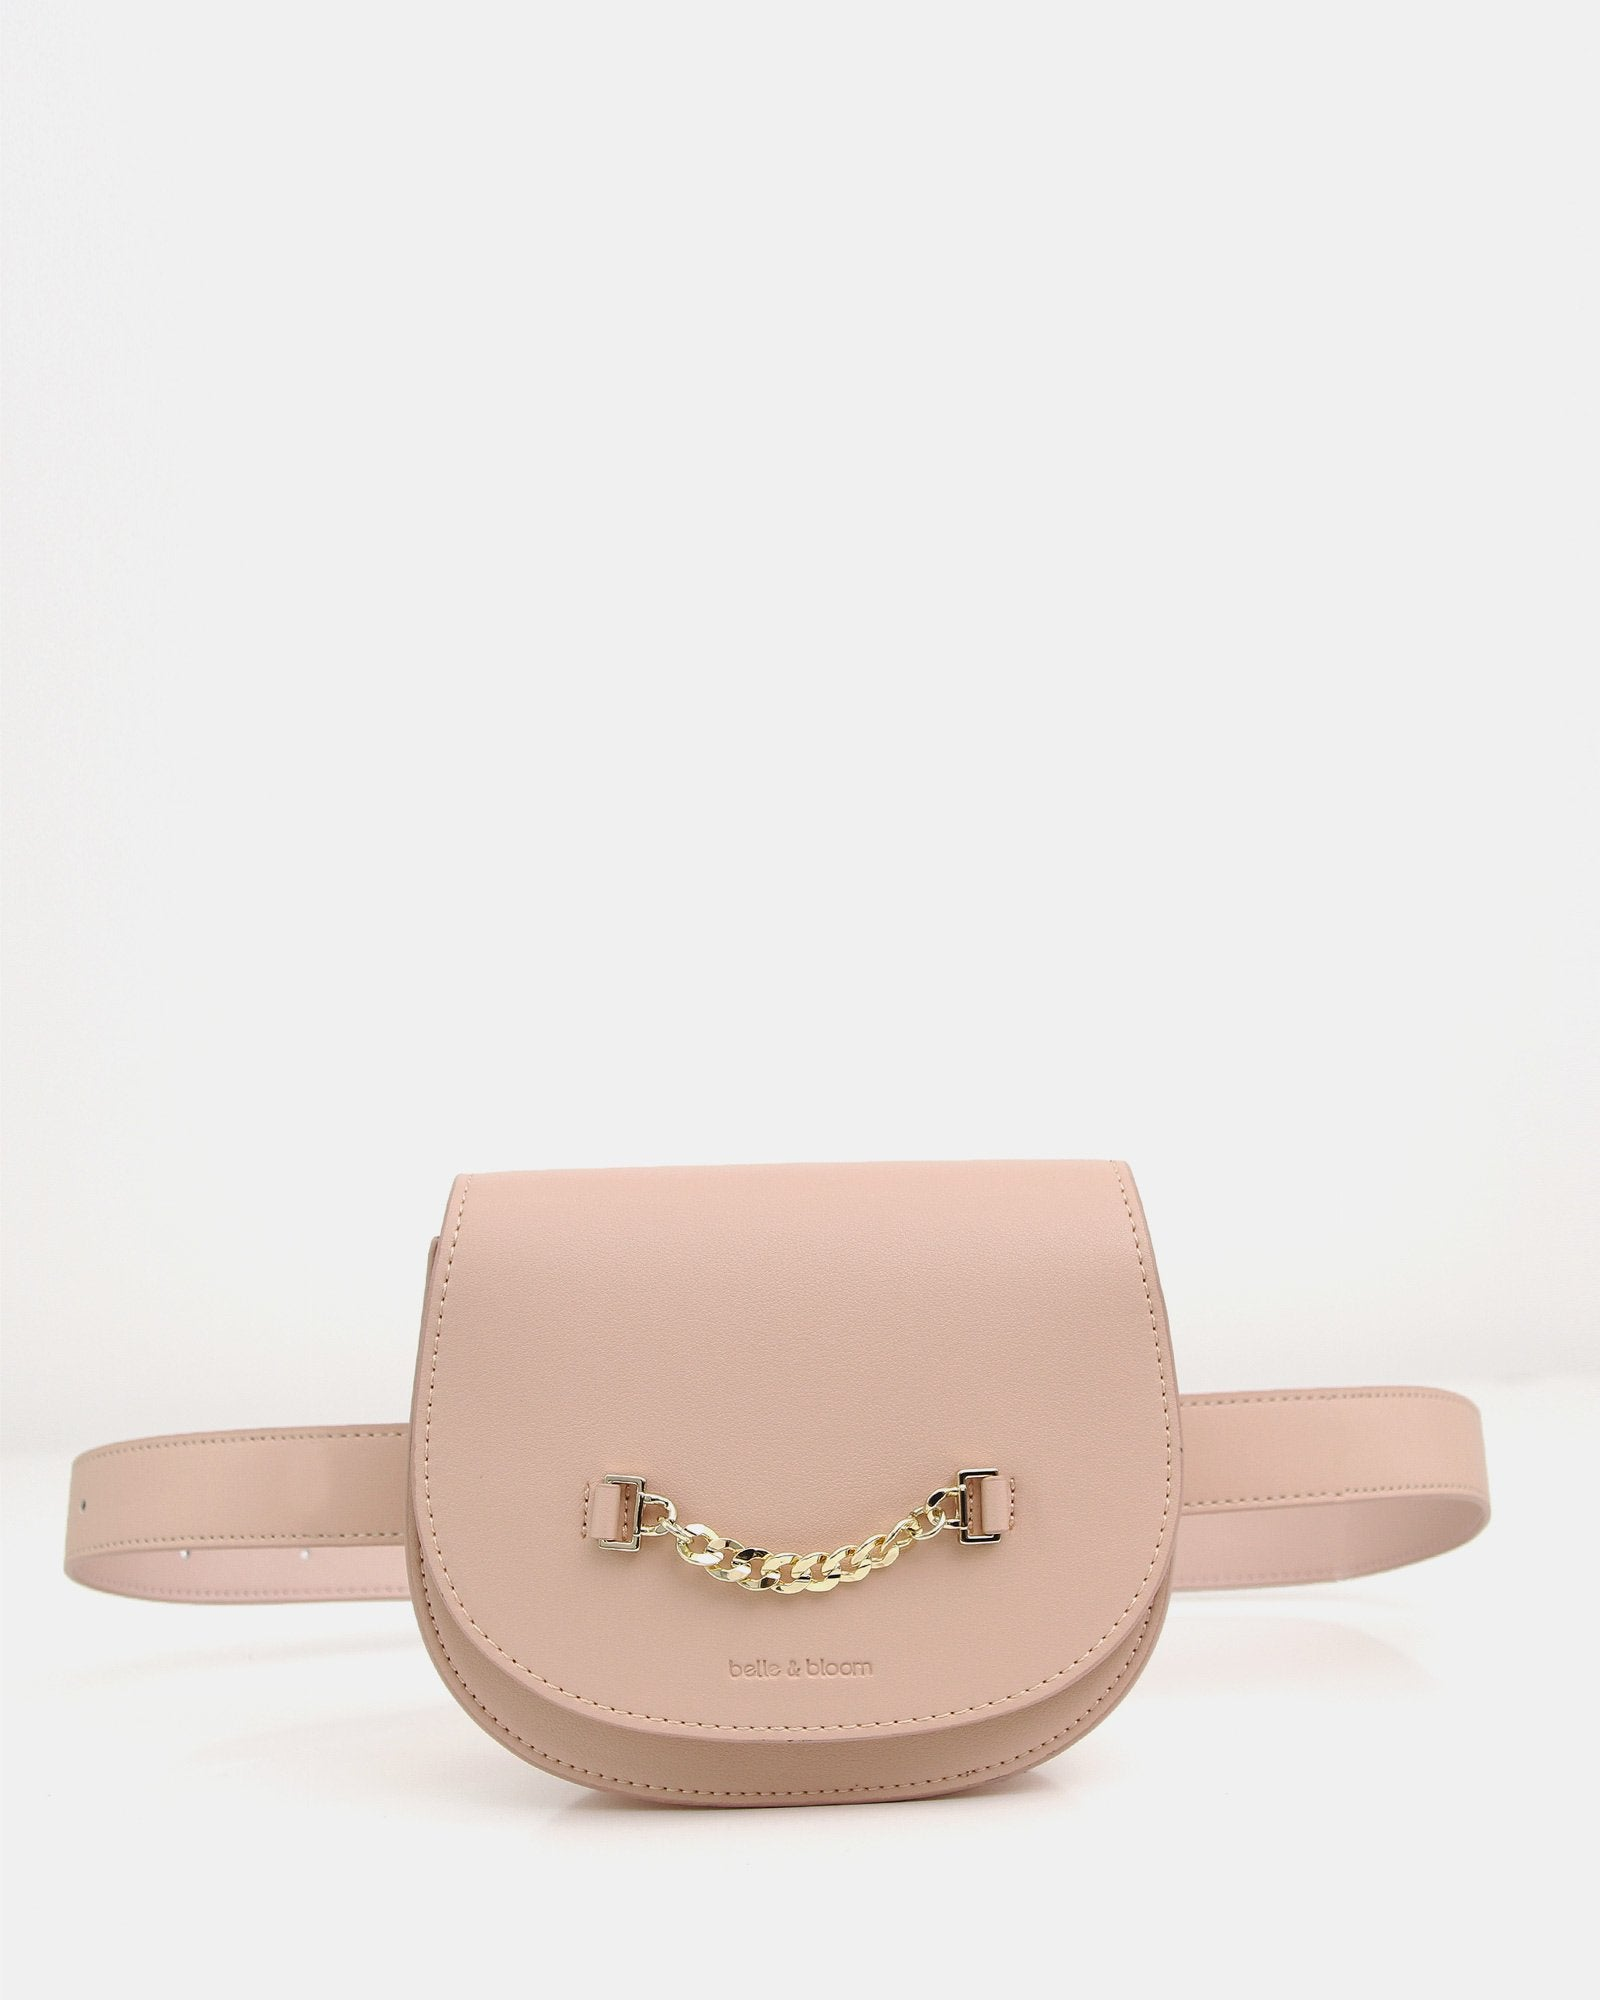 Ciao Bella Leather Belt Bag - Blush